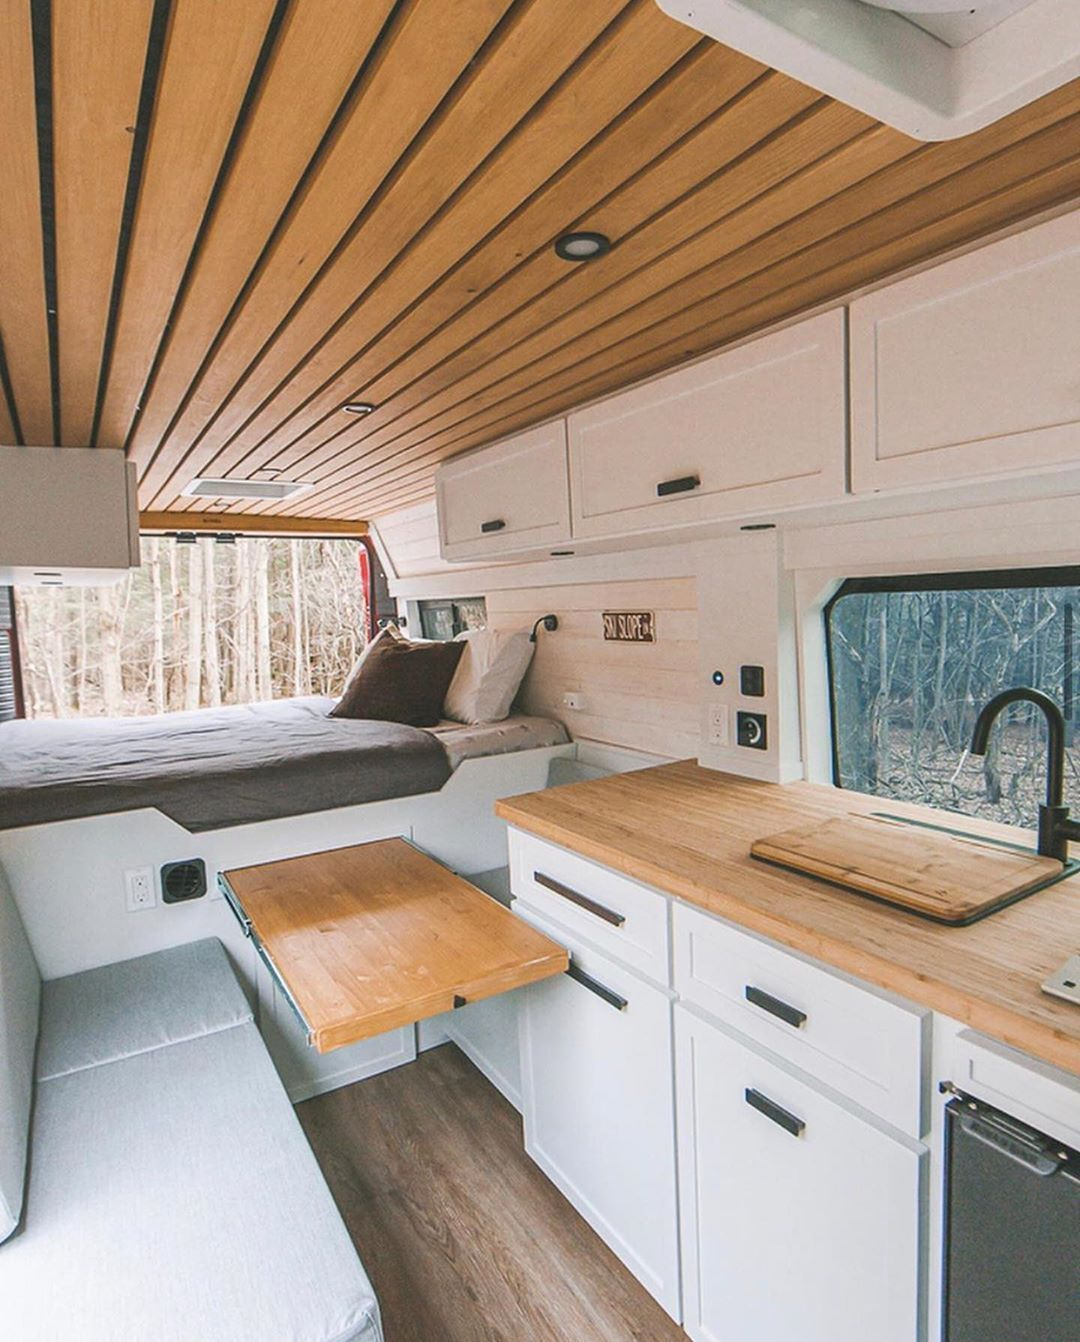 "Photo of Vanlife Living on Instagram: ""Rate this van conversion from 1-10!😍 Follow @vanlife.living for more!💛 • • 📸 @vanlife.sagas"""